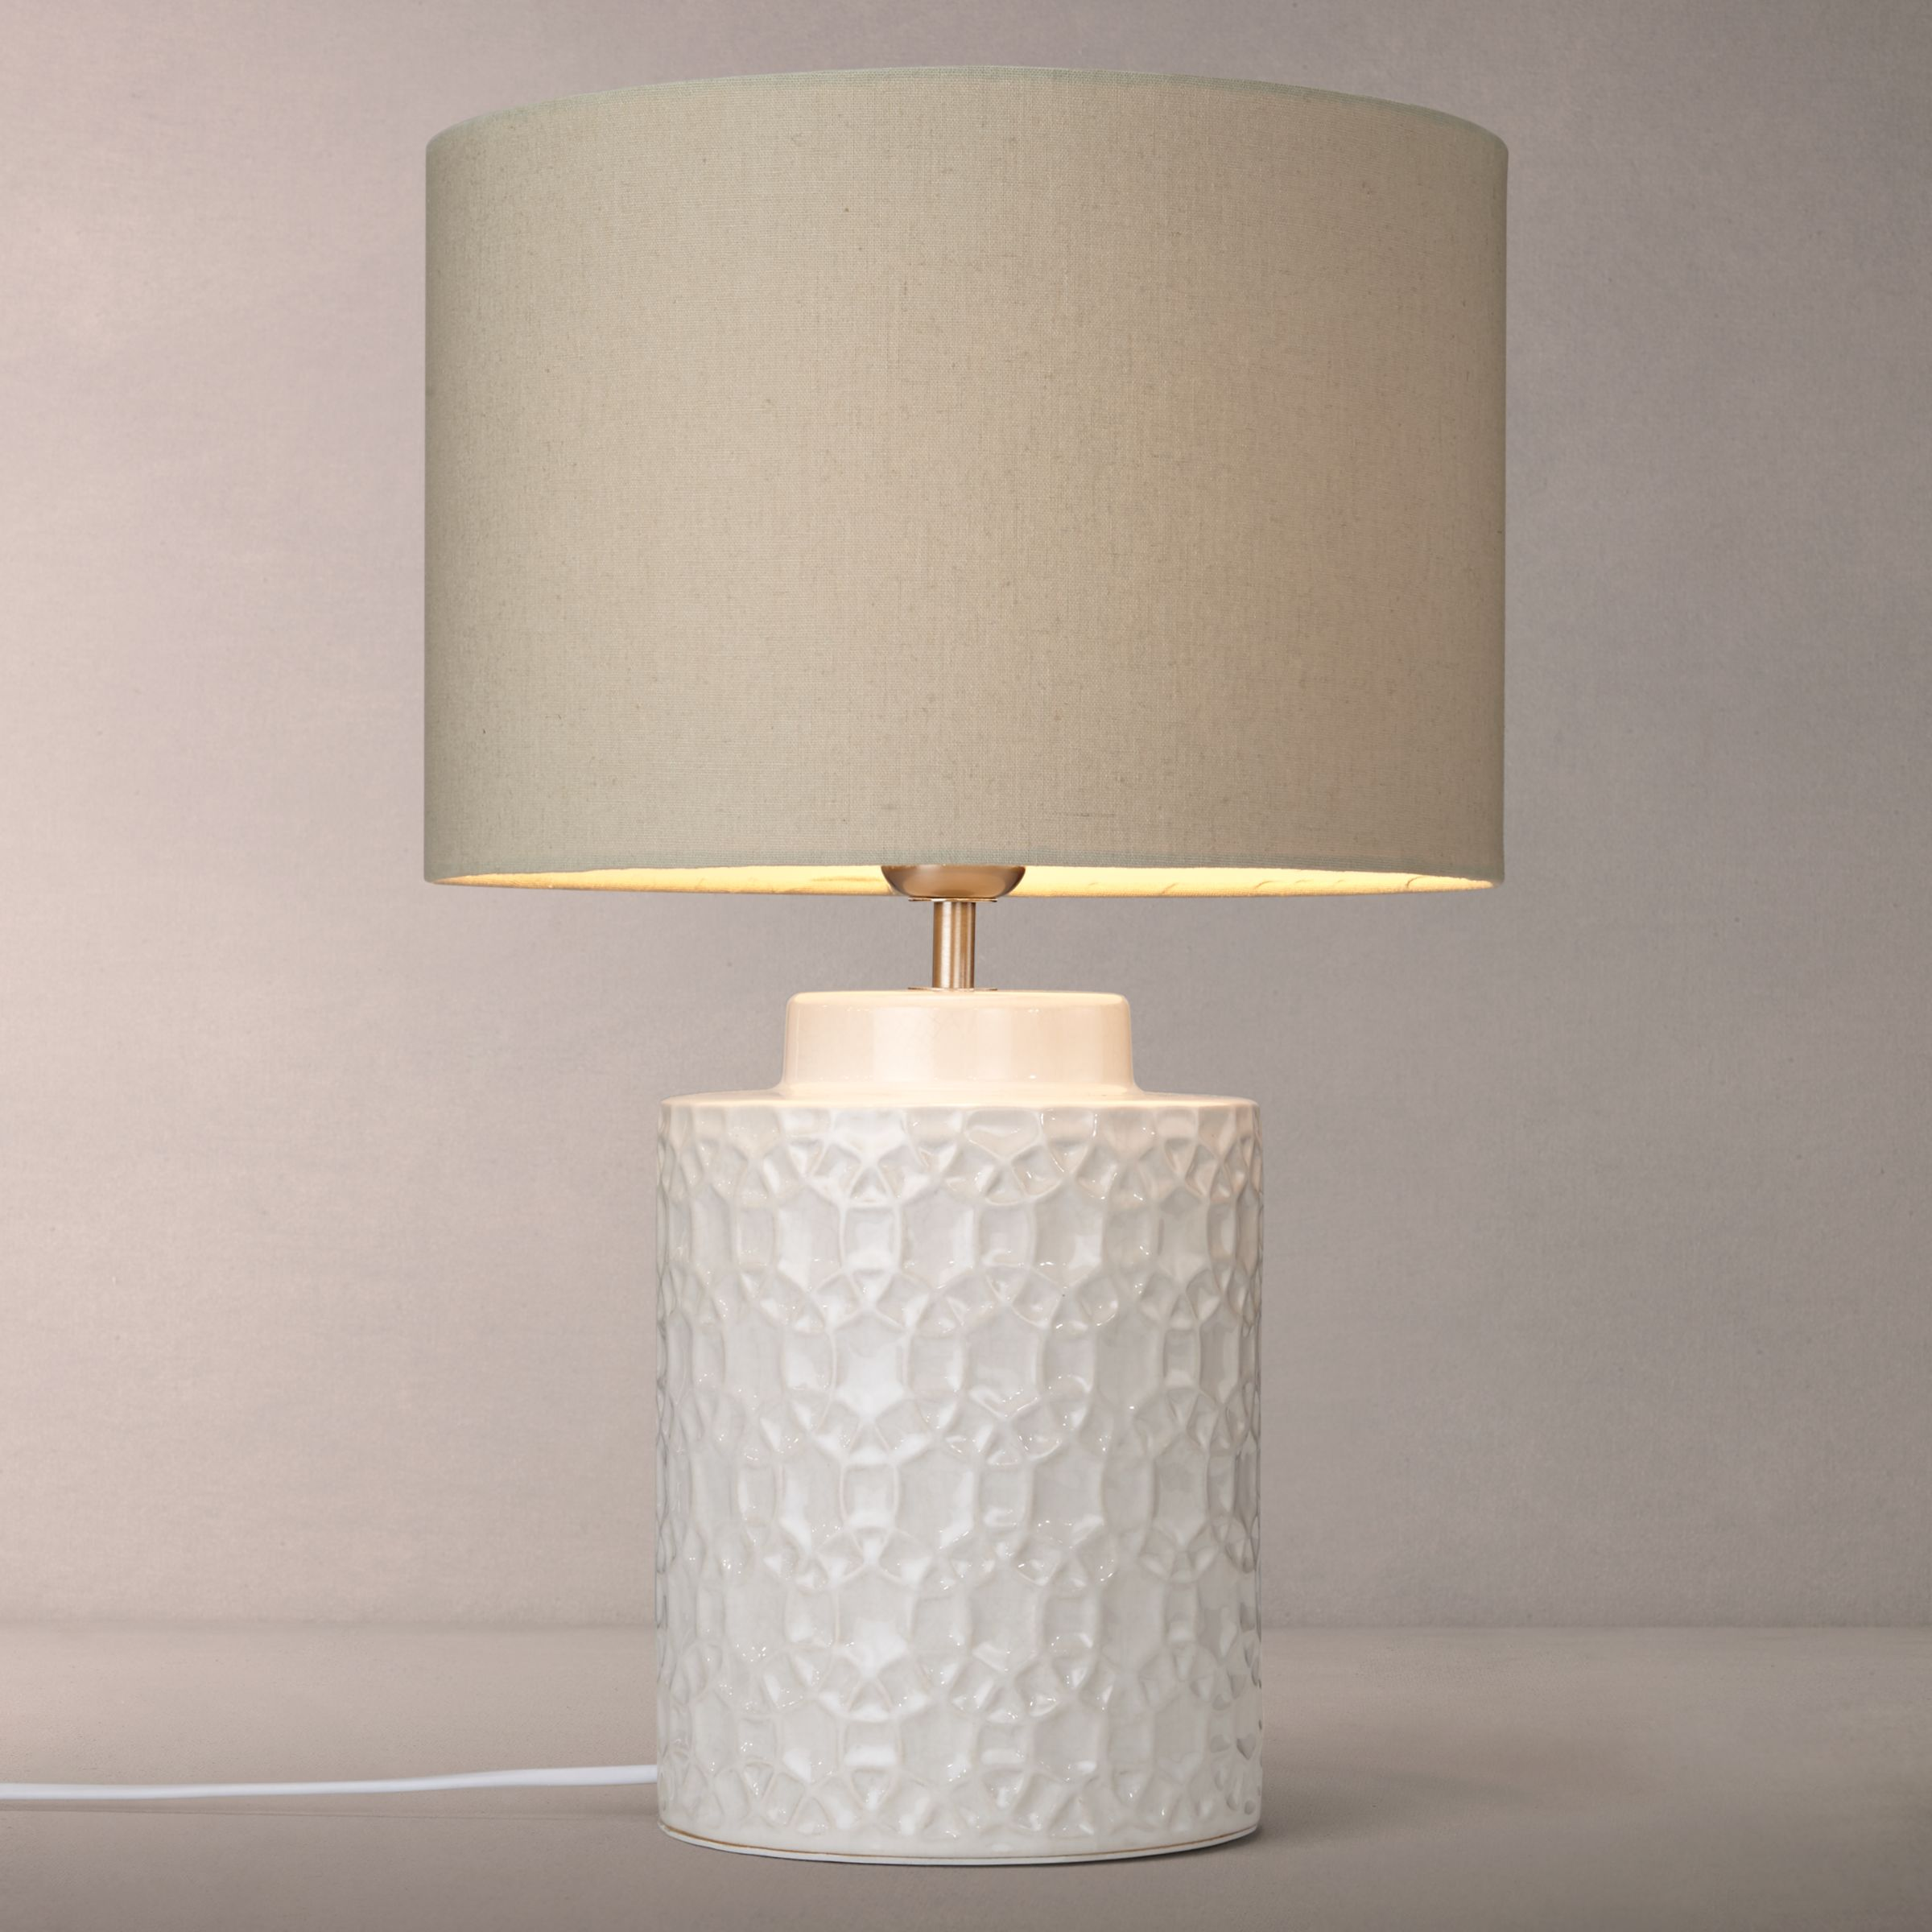 john lewis lulworth ceramic table lamps ivory gay times. Black Bedroom Furniture Sets. Home Design Ideas